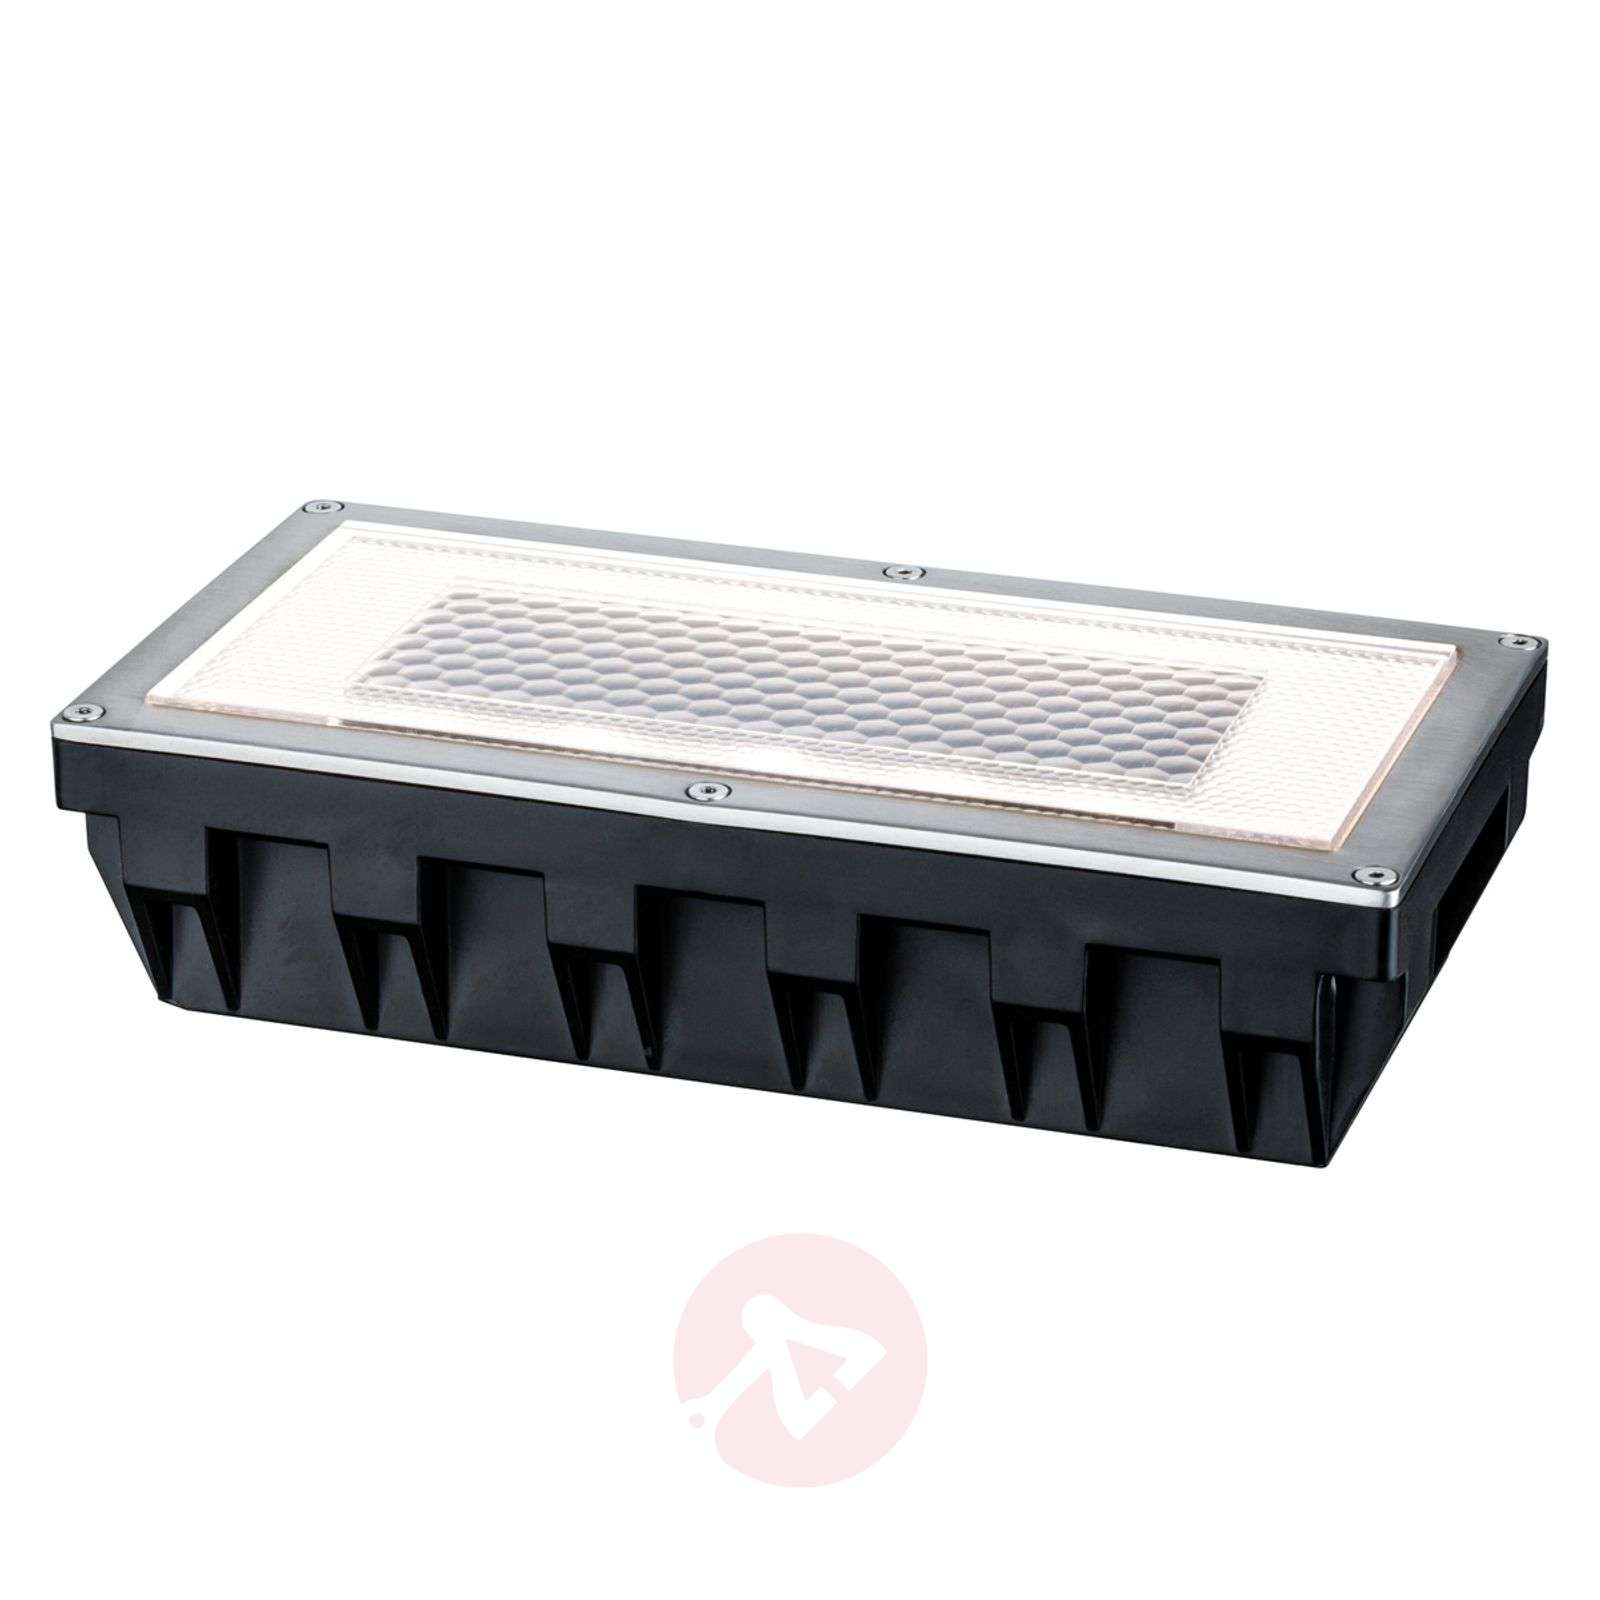 Paulmann Solar Box LED-lattiauppovalaisin 20x10cm-7600637-01